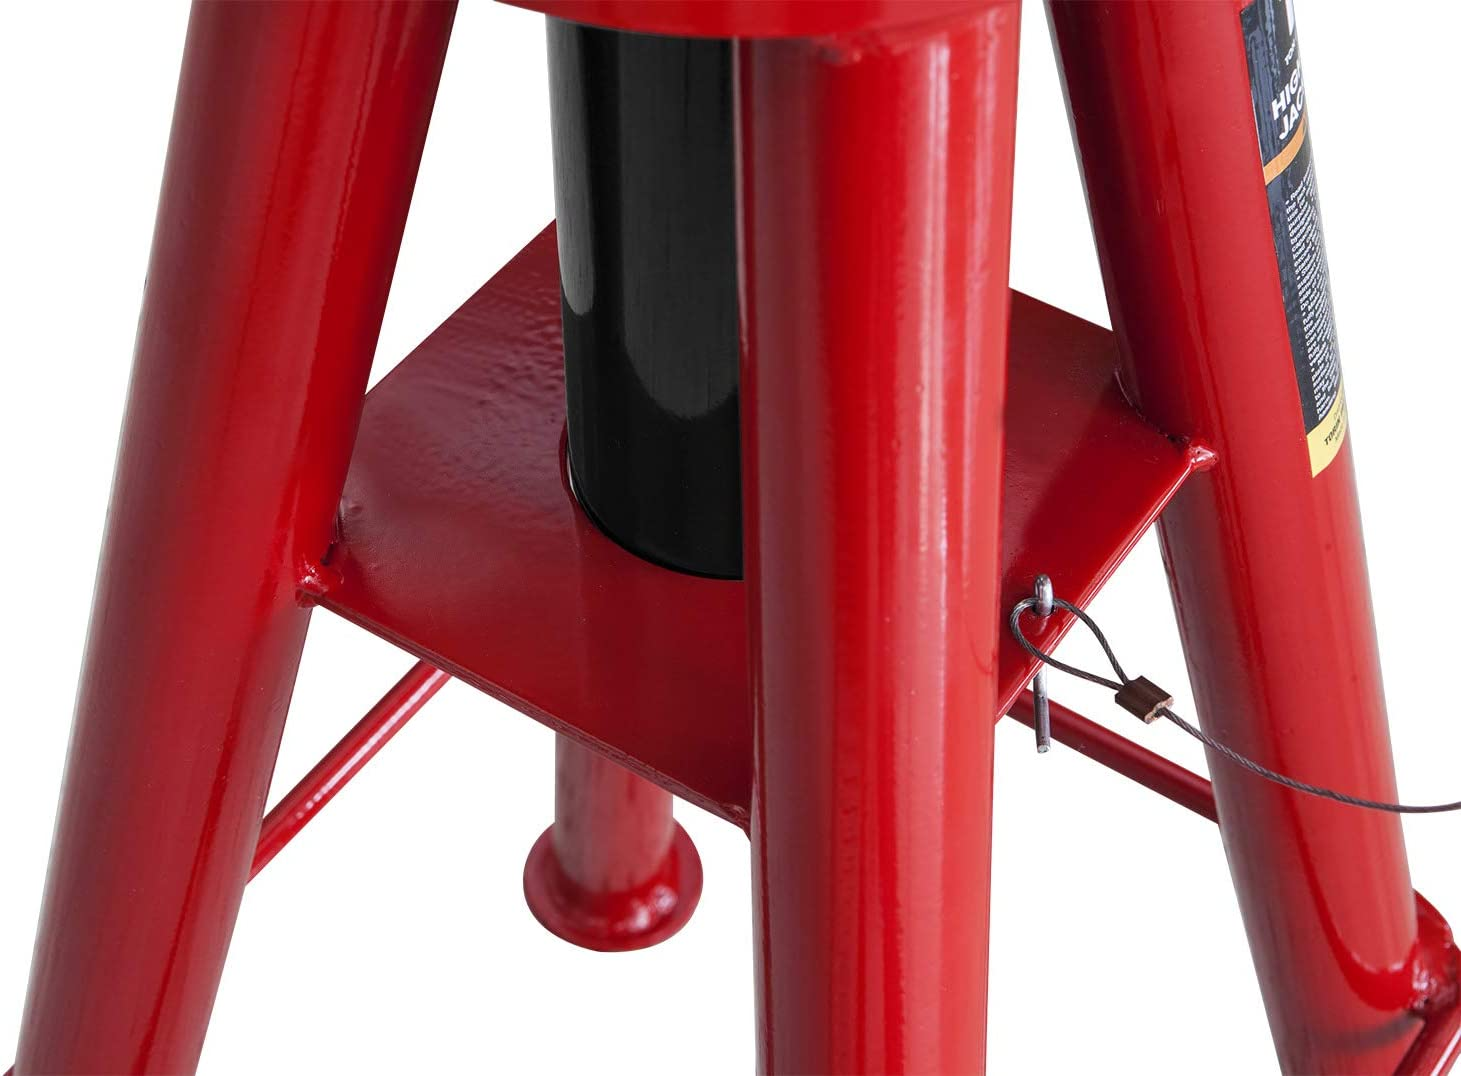 BIG RED T90106 Torin Heavy Duty Steel Jack Stands with Locking Support Pins: High Height 20,000 lb 1 Pair Red//Black Capacity 10 Ton